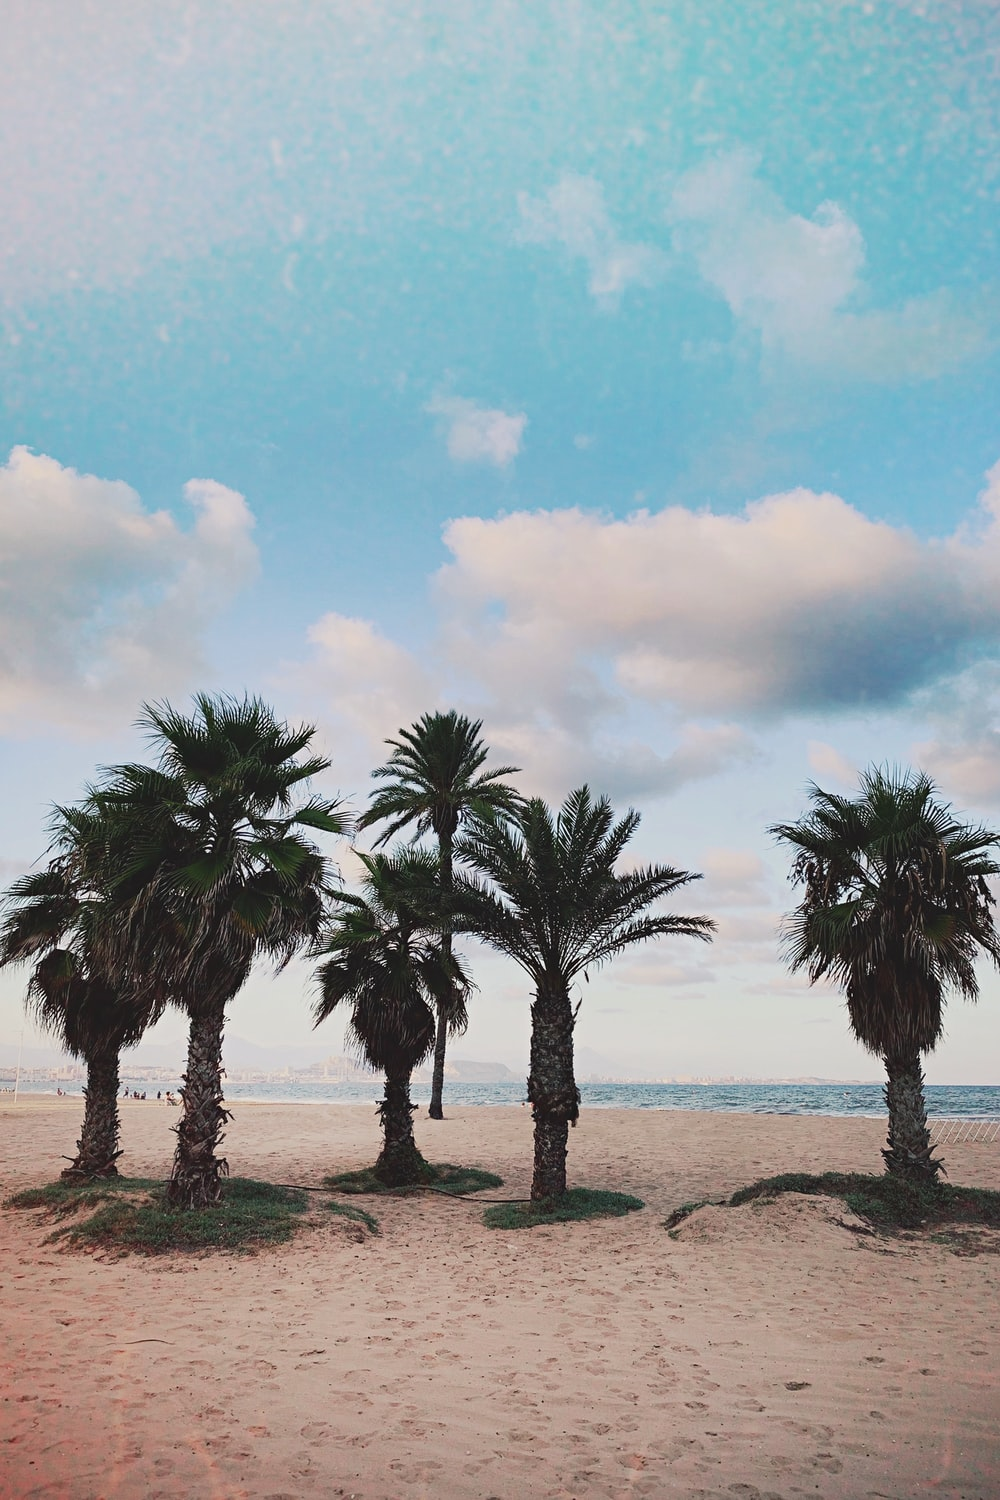 coconut palm trees on shore at daytime